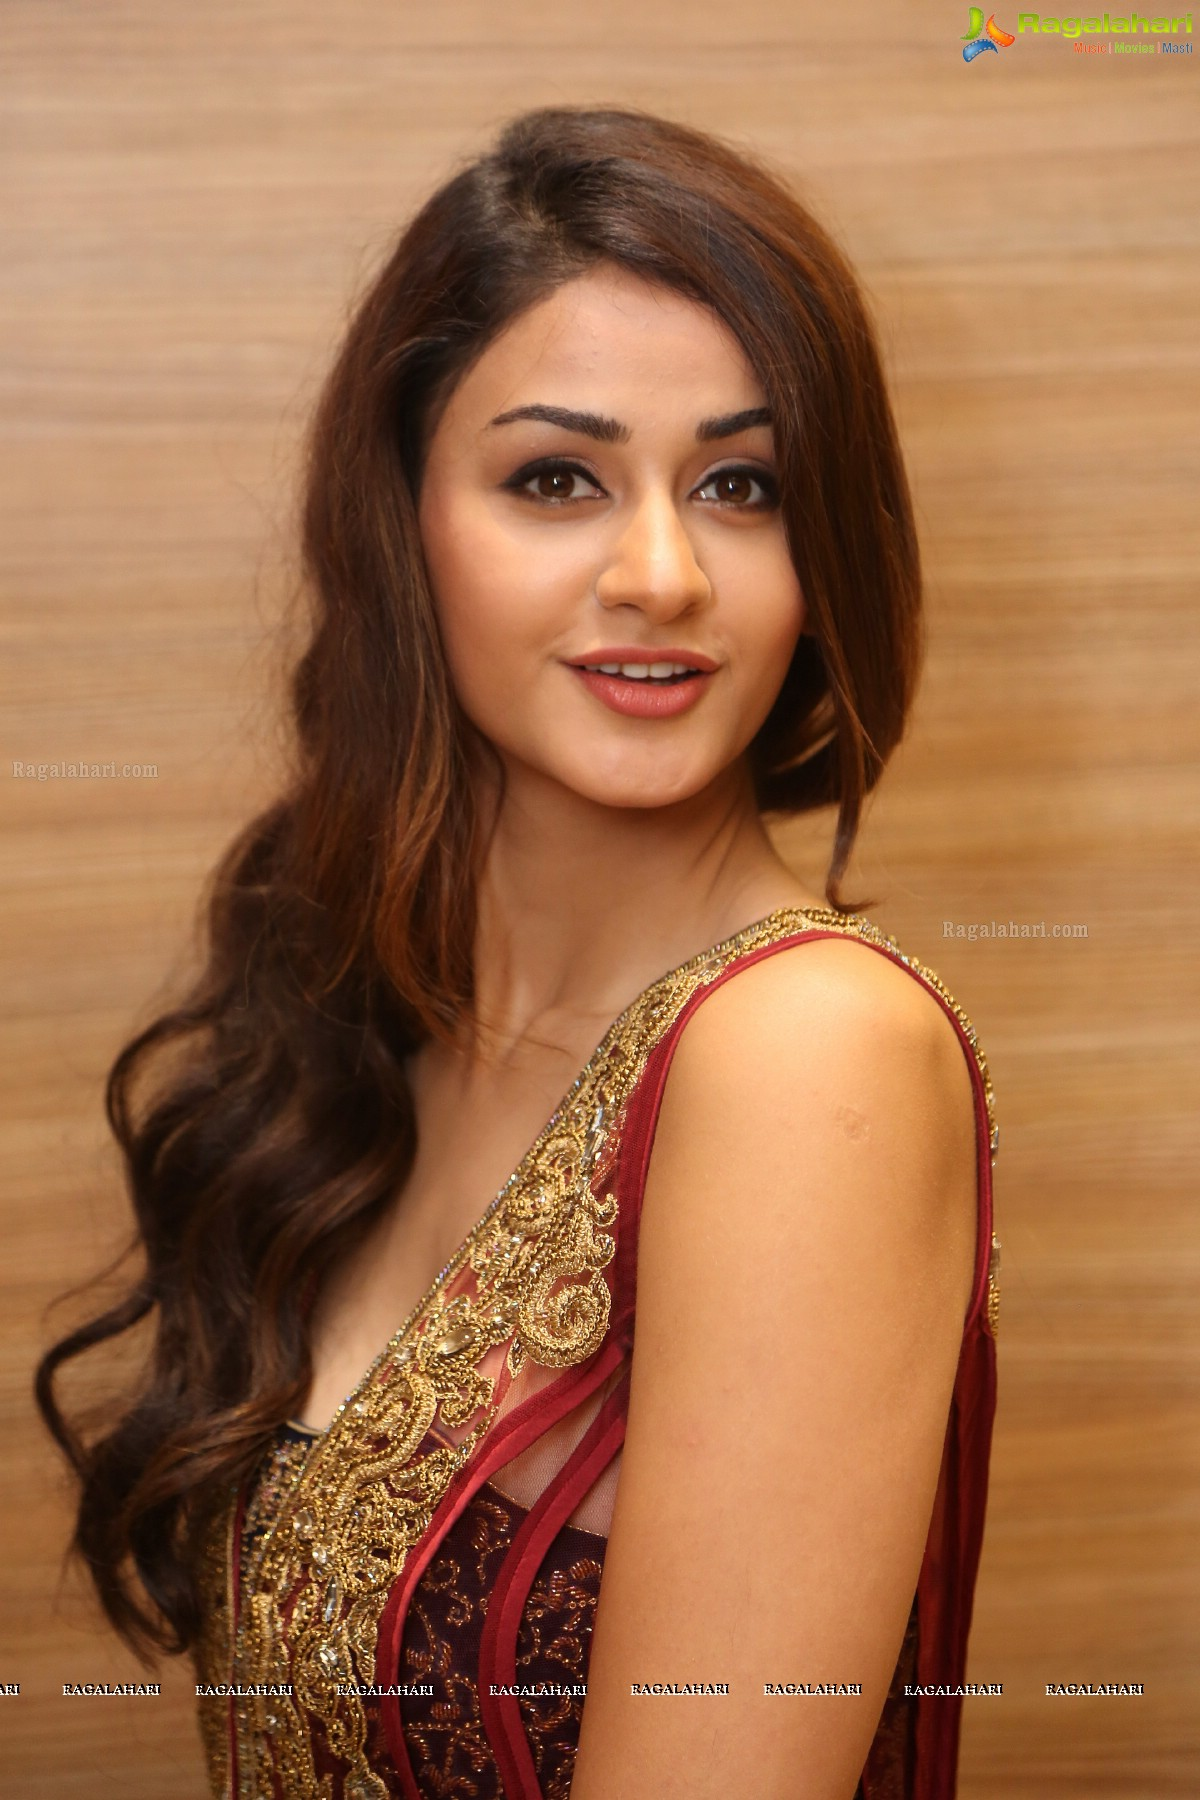 Aditi Arya Image 18 Telugu Actress Wallpapers Images Photos